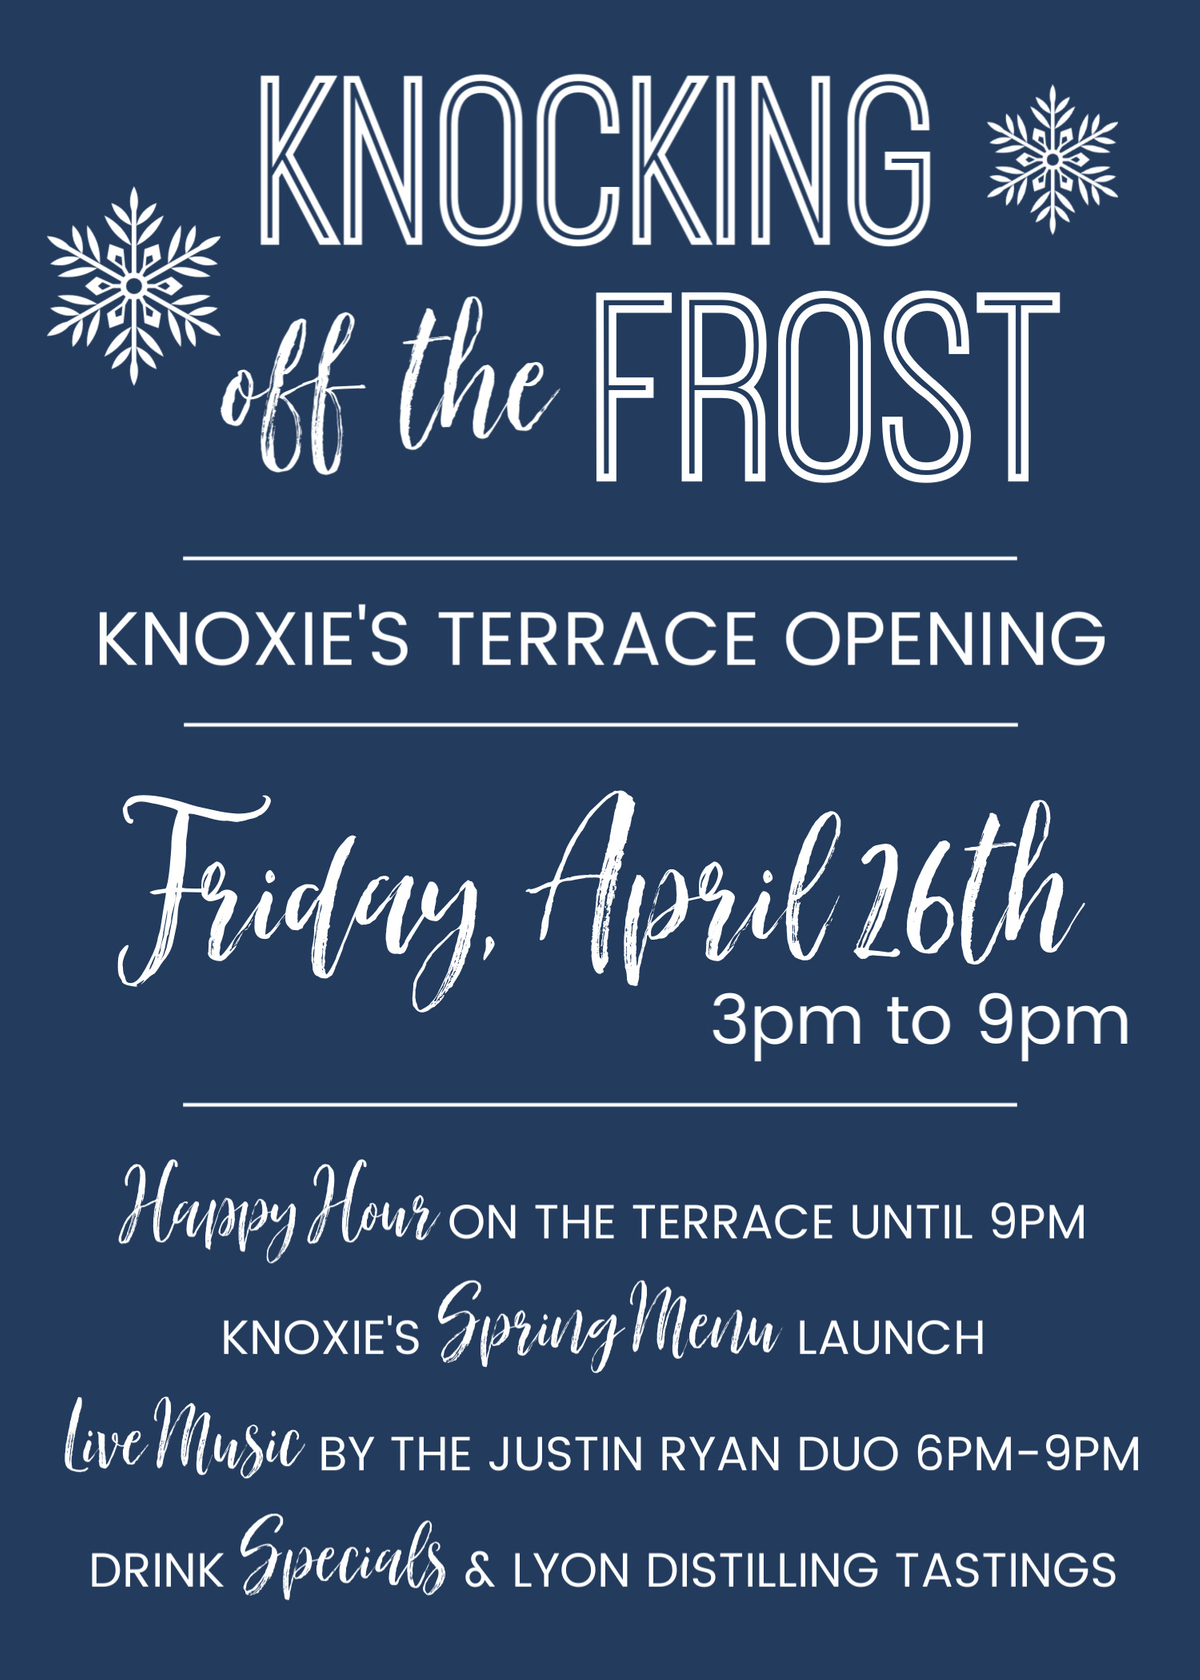 Knocking off the Frost Poster - 2019.jpg